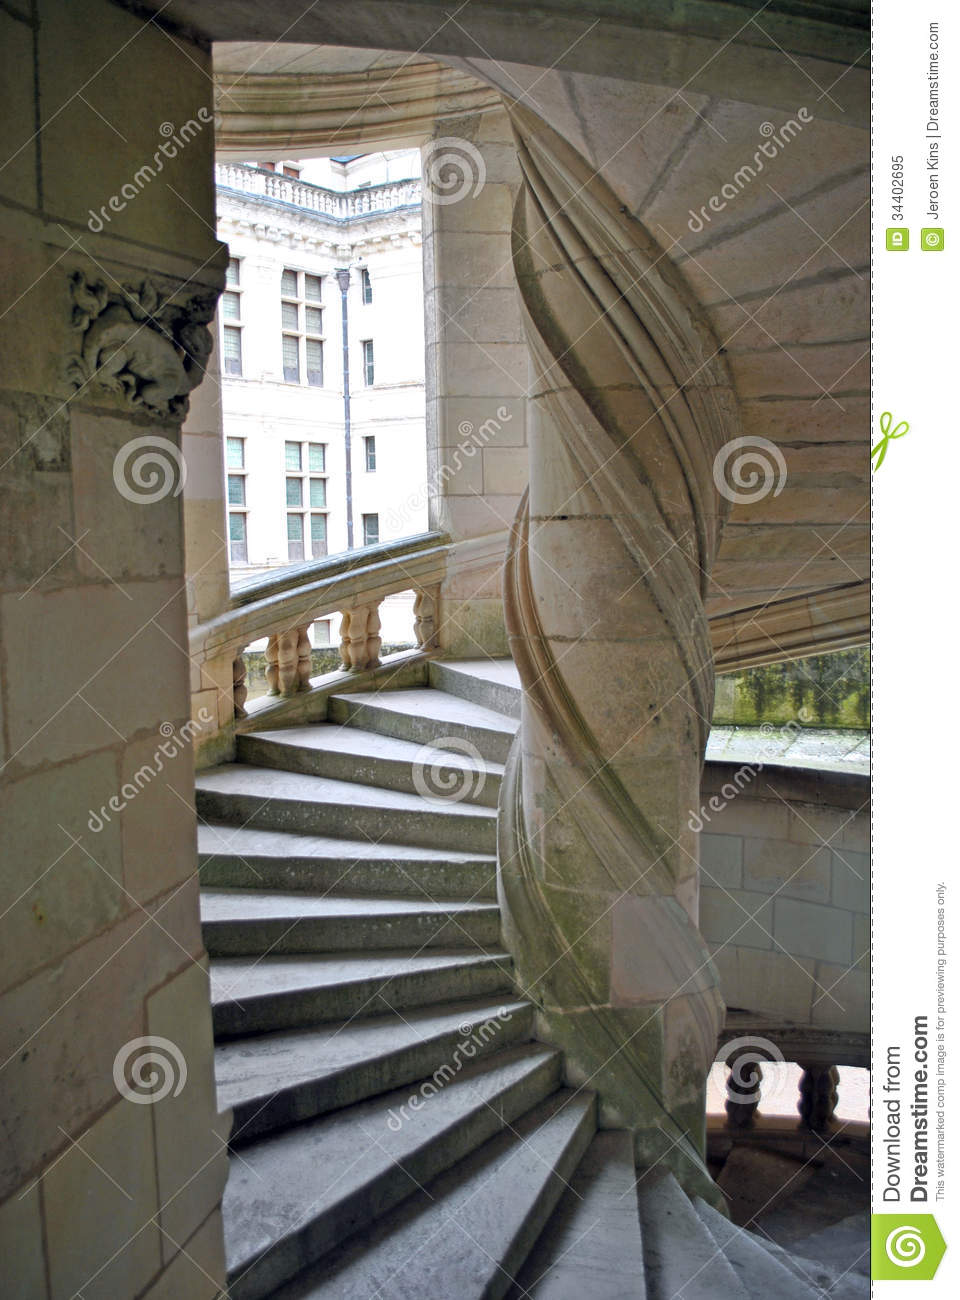 Spiral Stairs Castle Chambord France as well Shock Absorber Motorcycle Close Up moreover Party Background With Balloons Stock Illustration additionally Spray Paint Texture Set likewise F Aa. on spiral vector